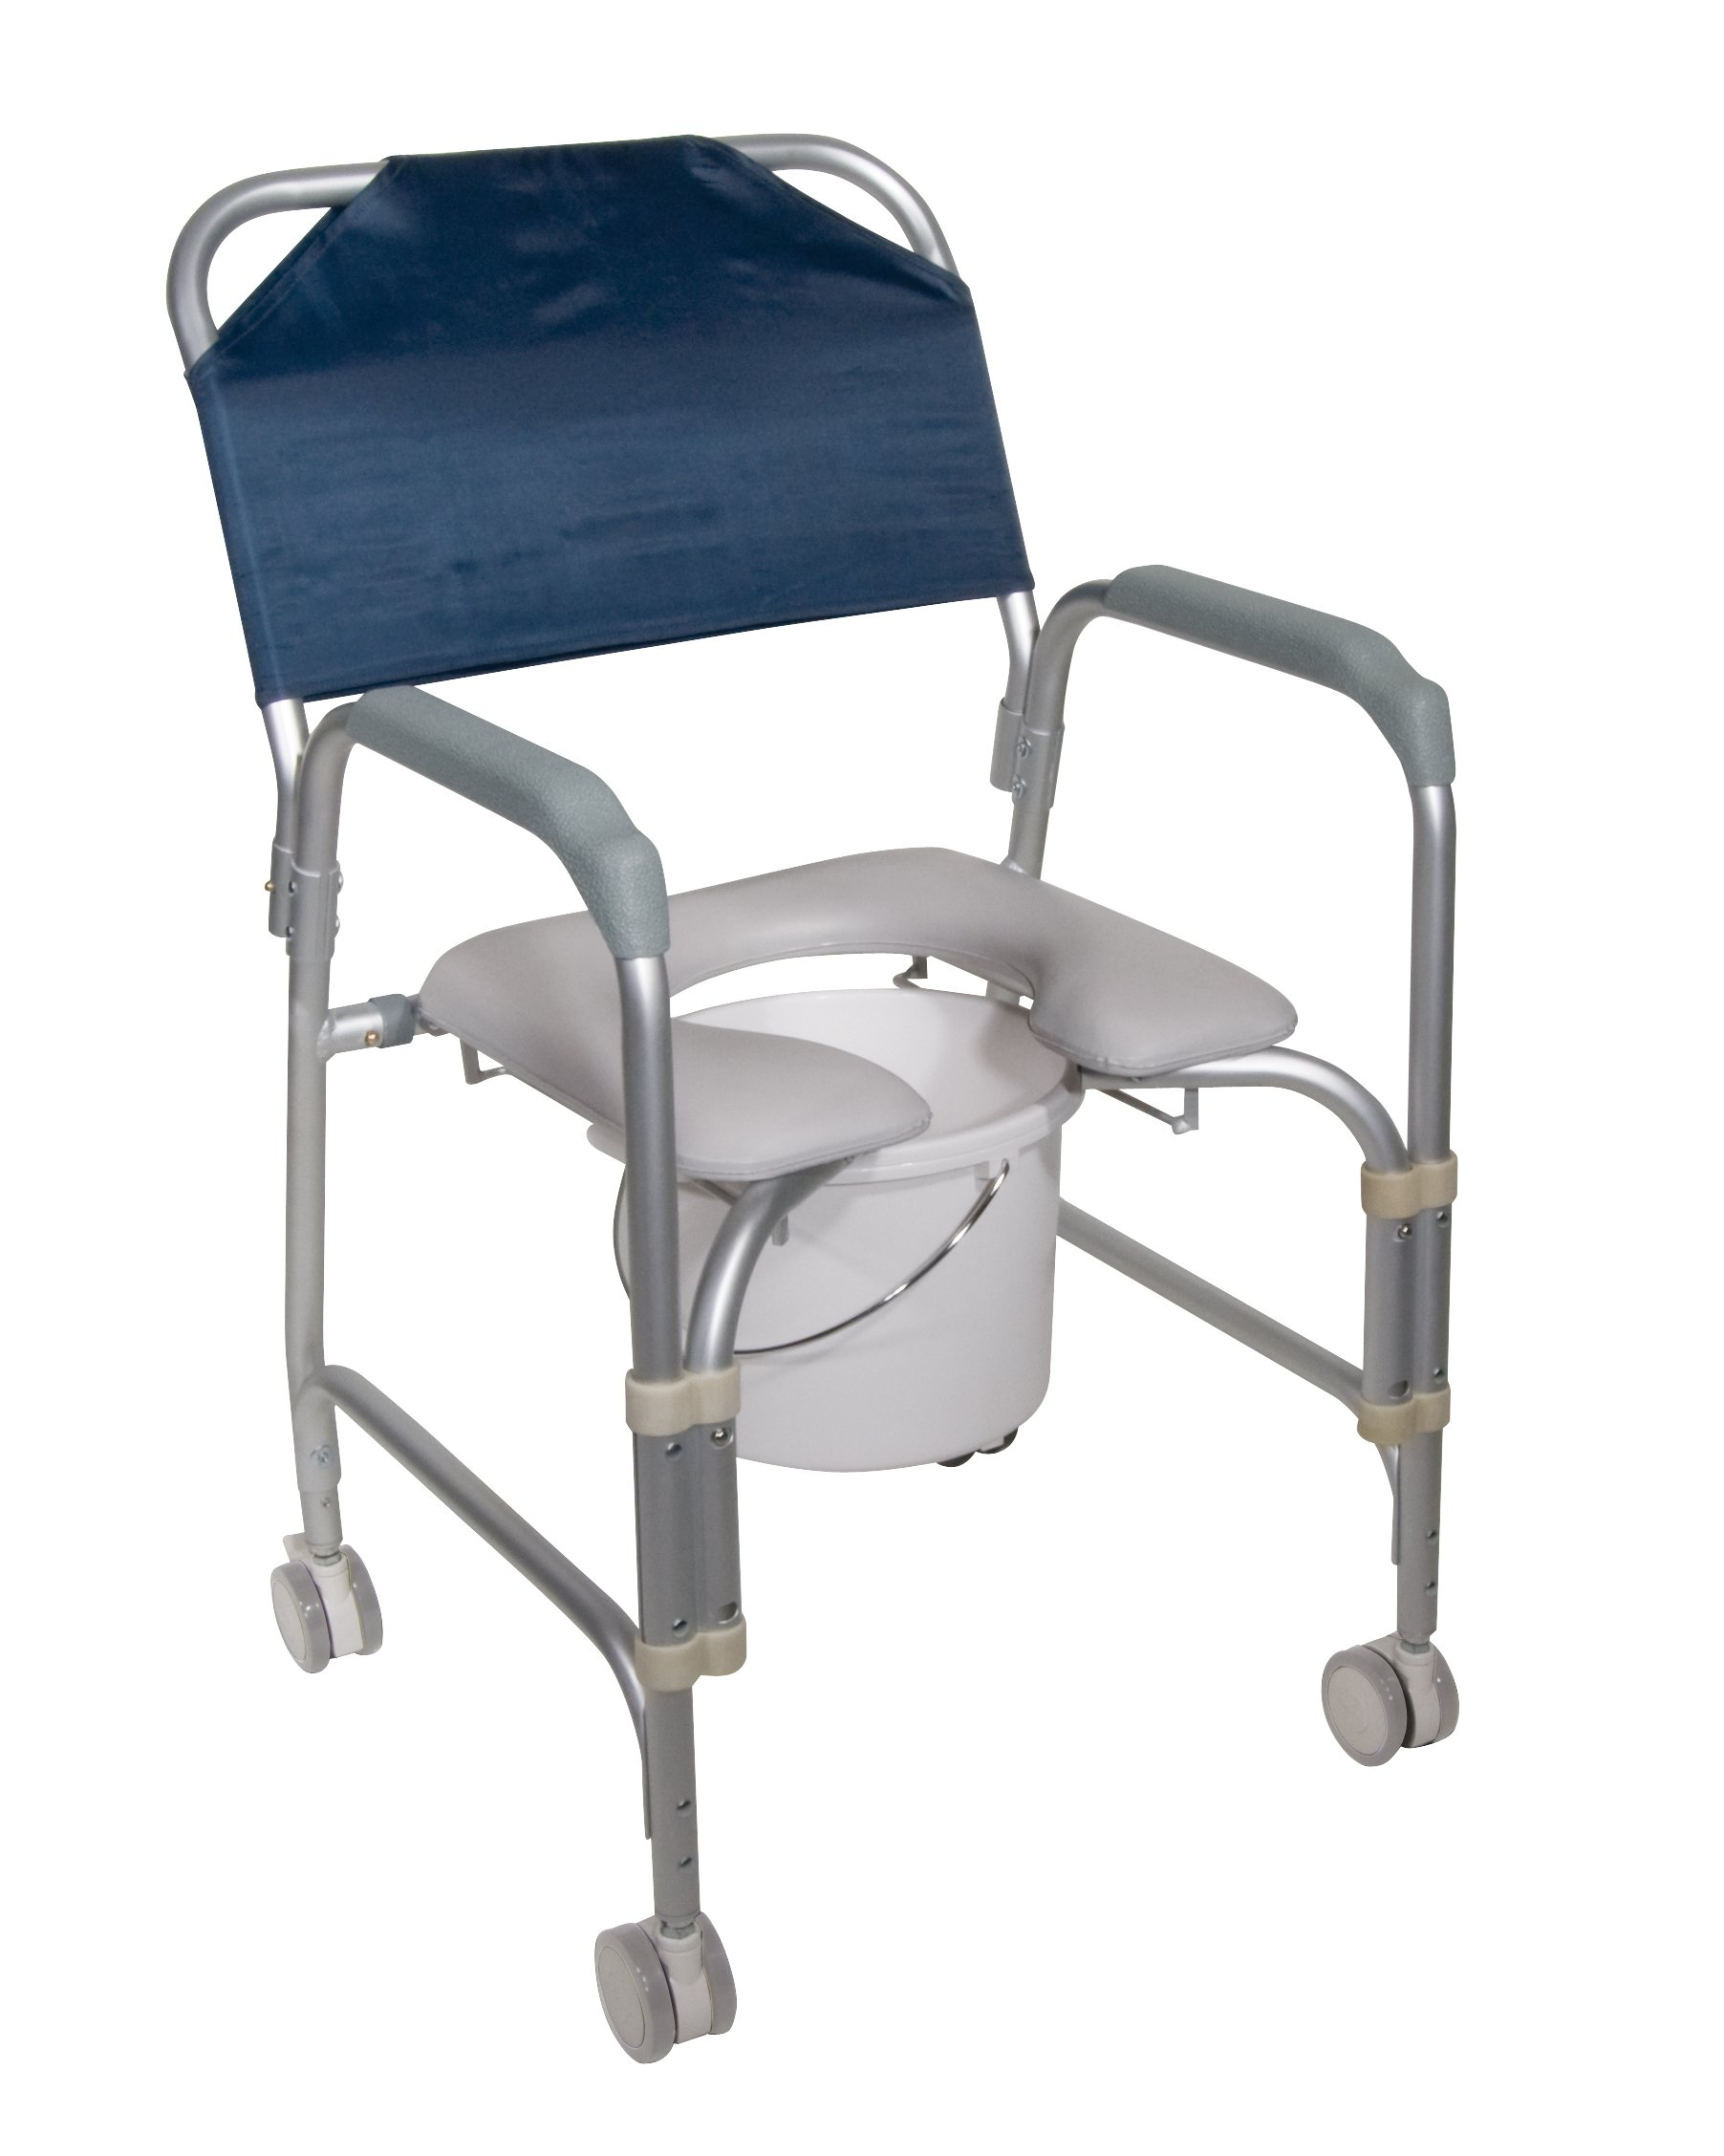 Drive Medical K. D. Aluminum Shower Chair/Commode with Casters by Drive Medical